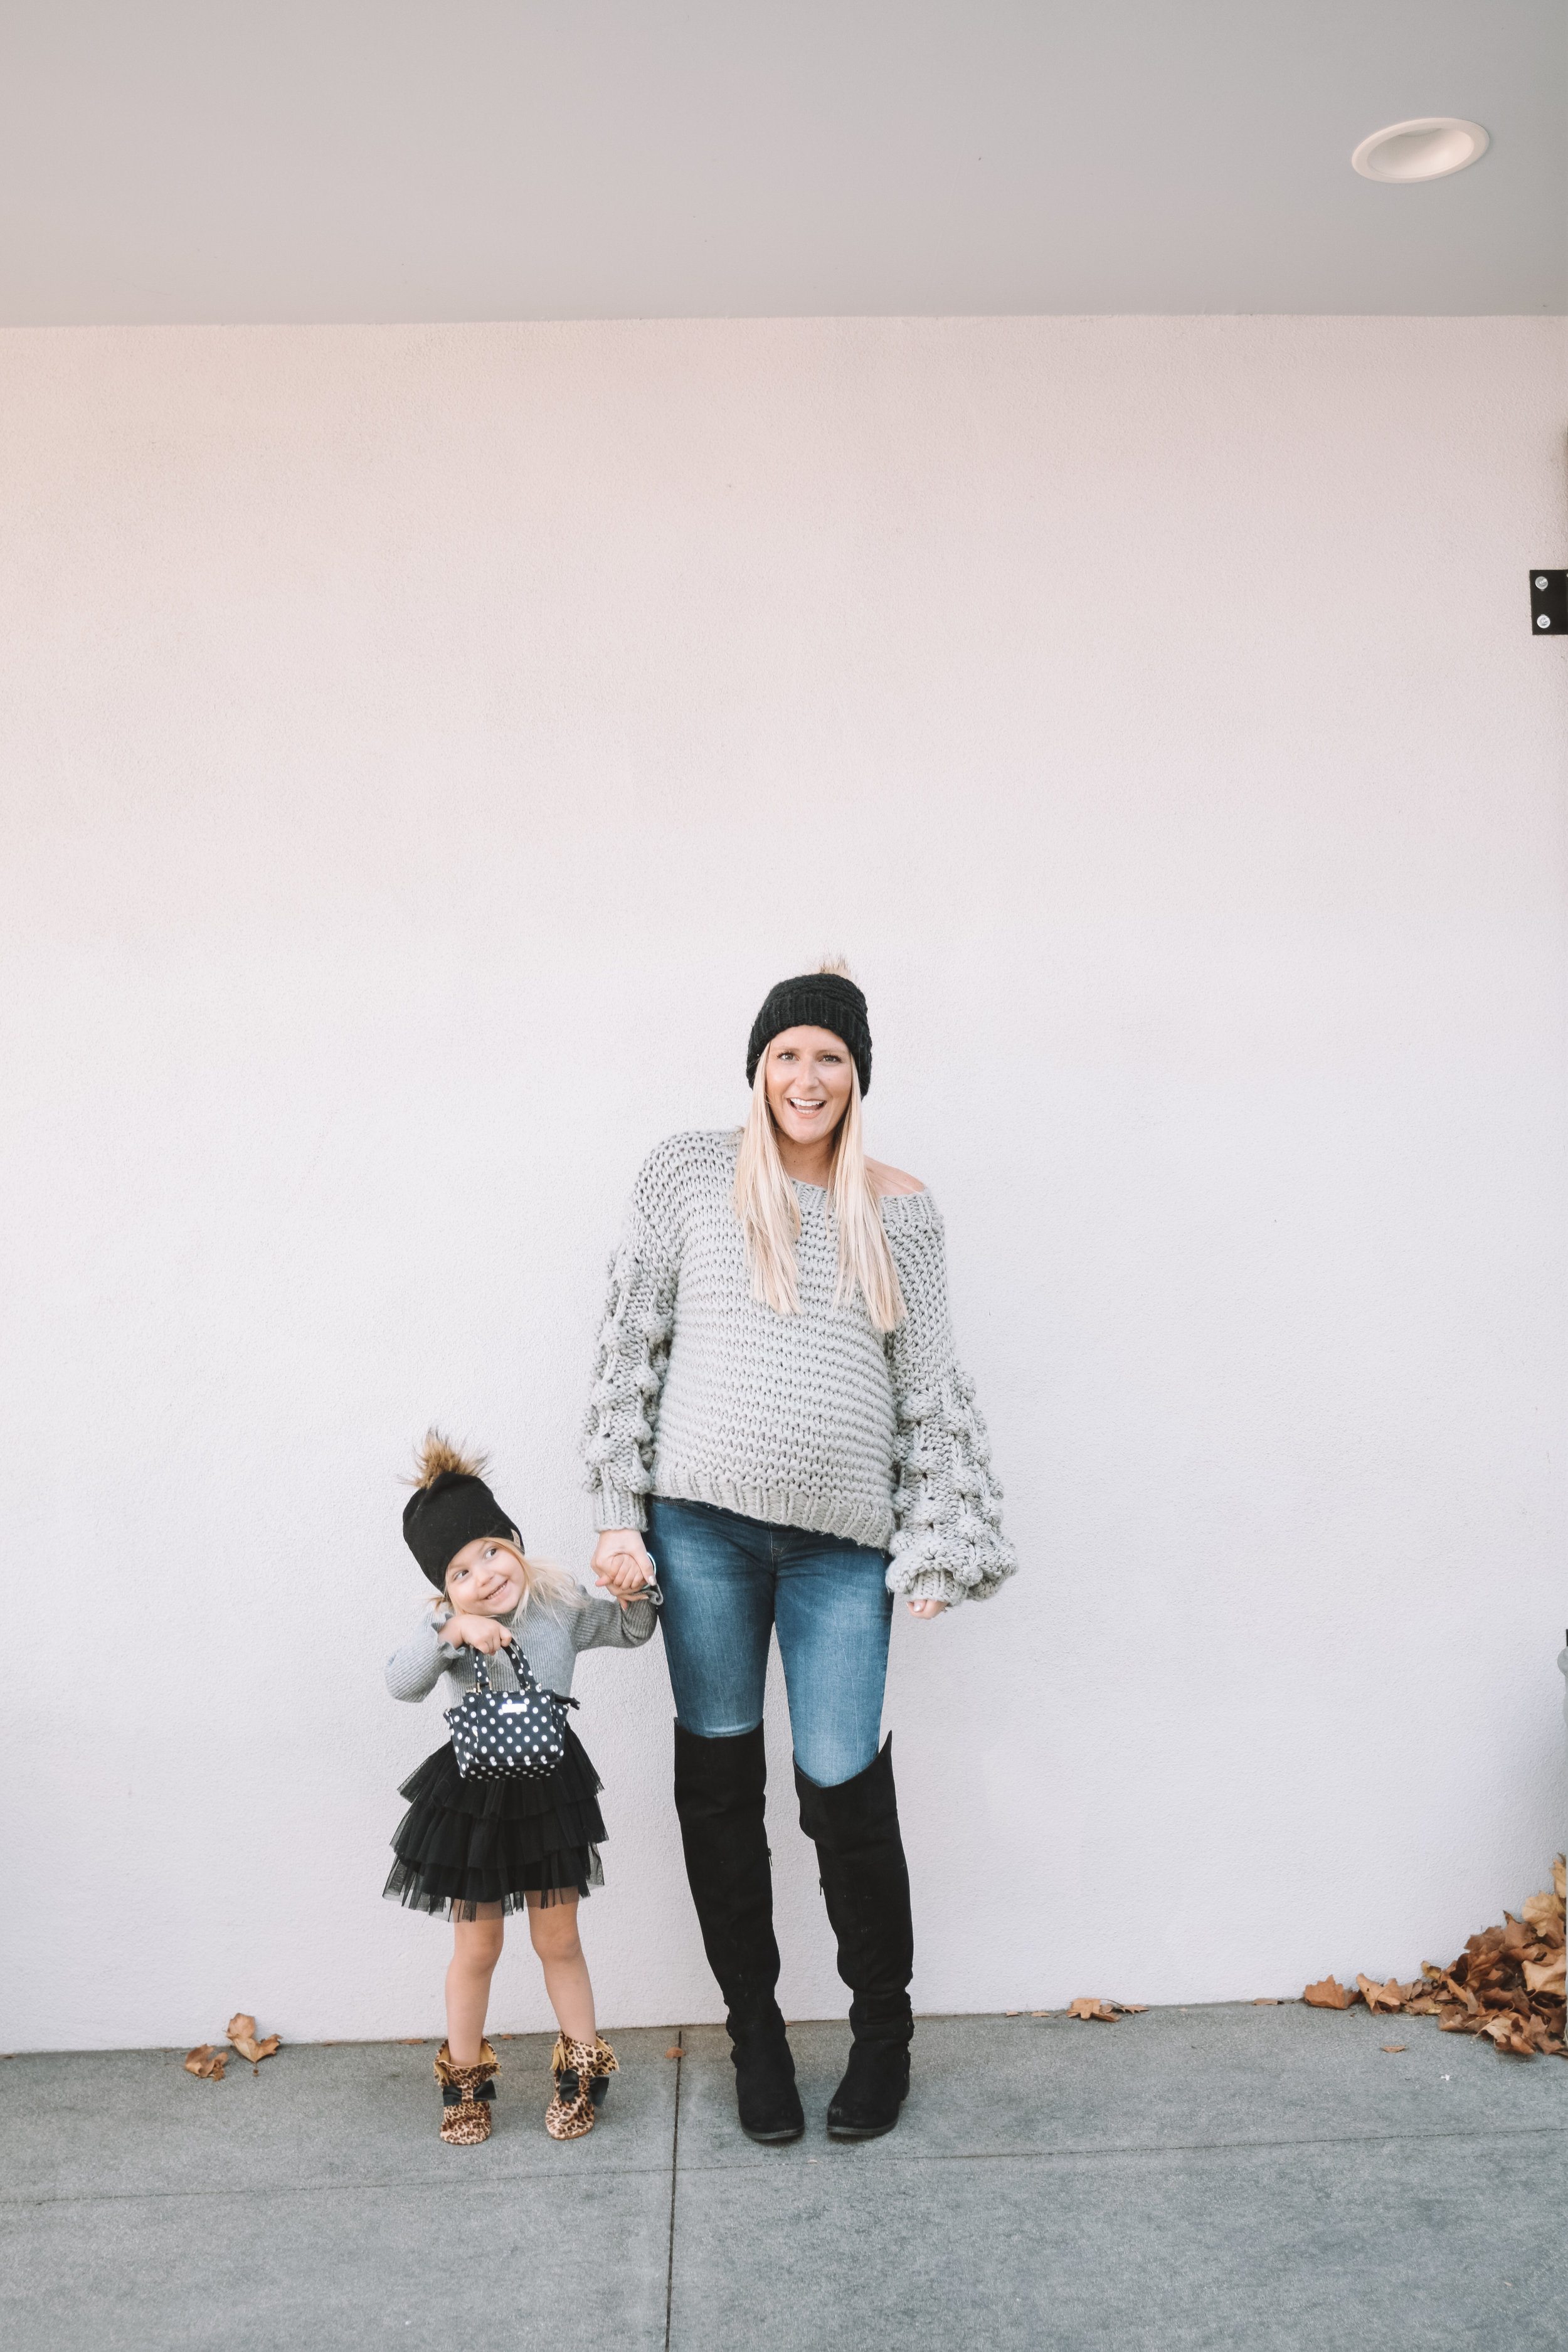 Mommy and Me Clothes Outfits - Cute Maternity Fashion - The Overwhelmed Mommy Blogger